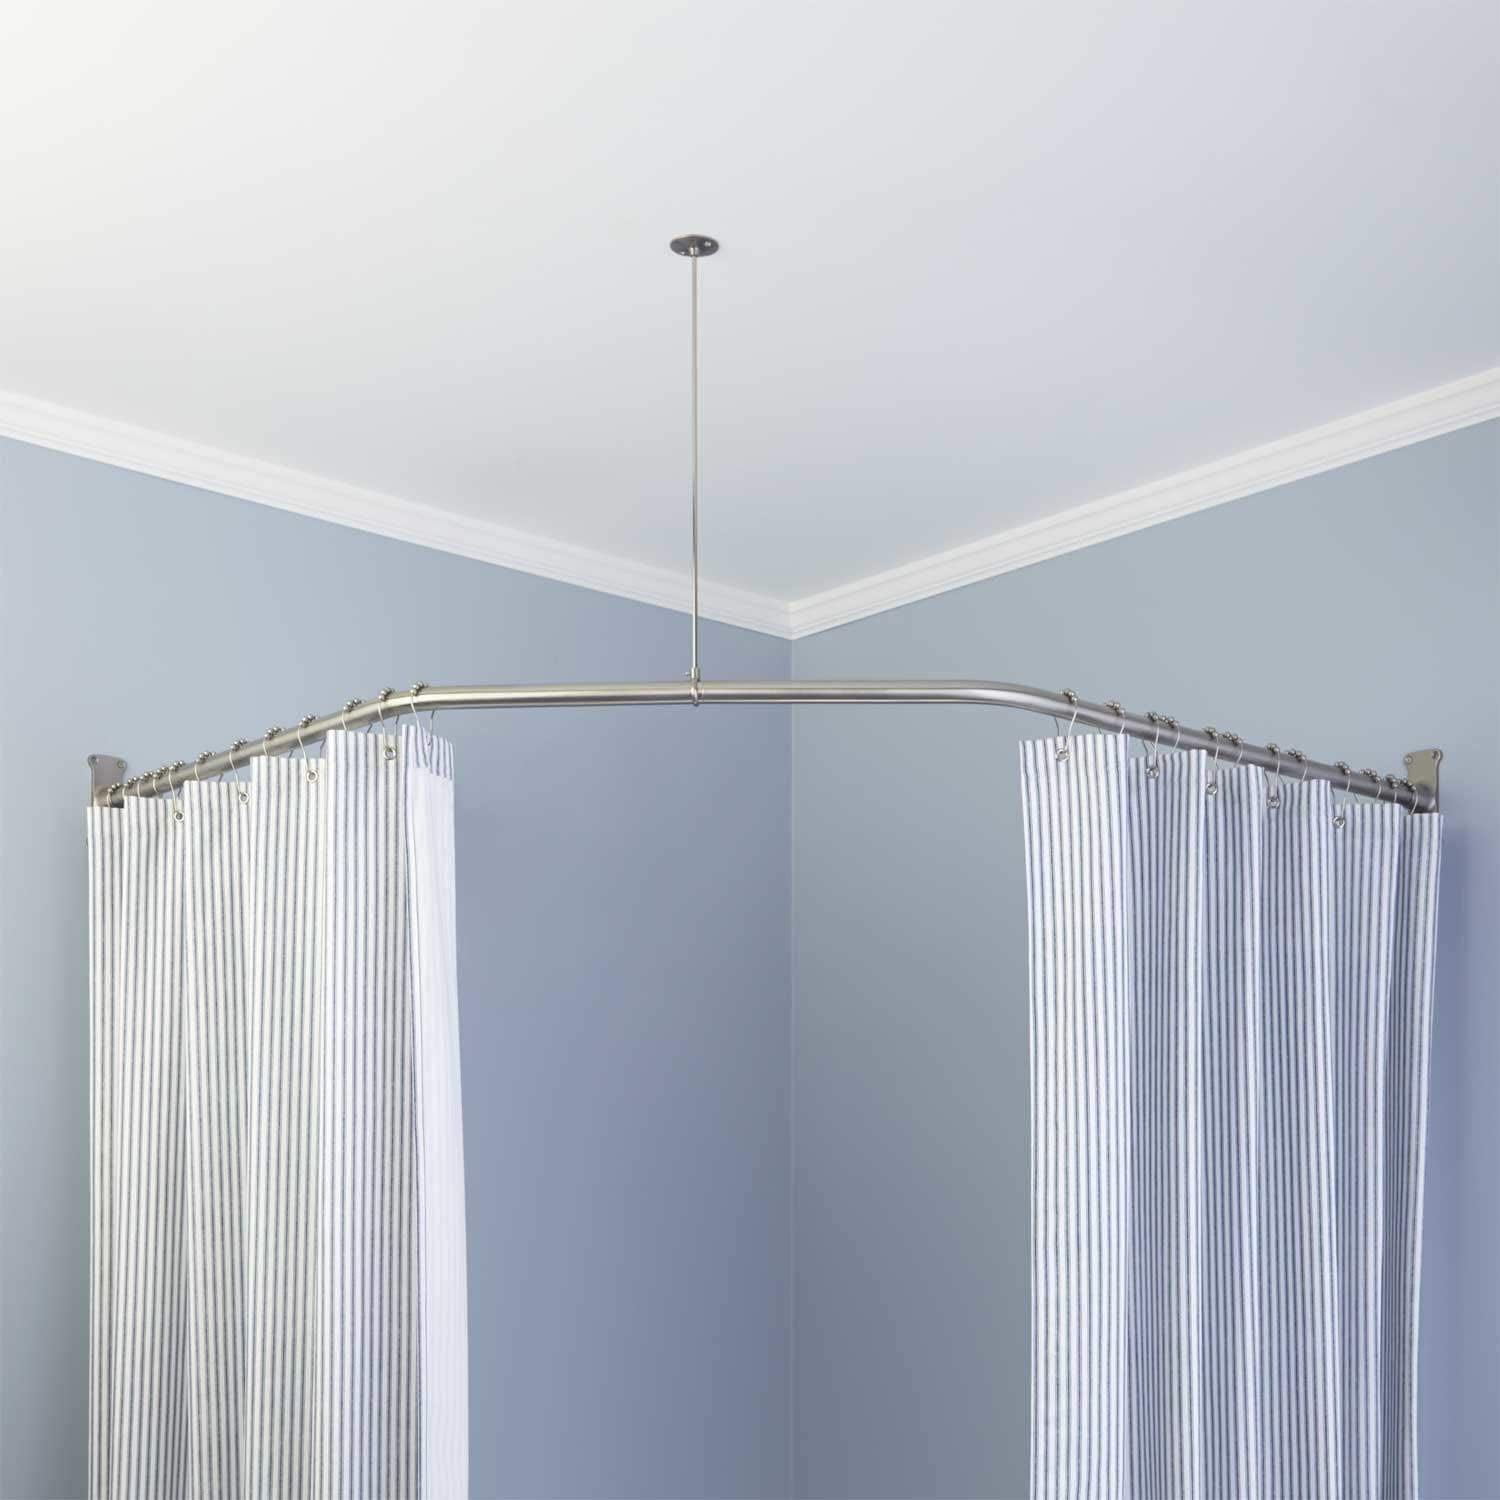 Naiture 36 Standard Stainless Steel Shower Rod Ceiling Support with 1 Loop Chrome Finish